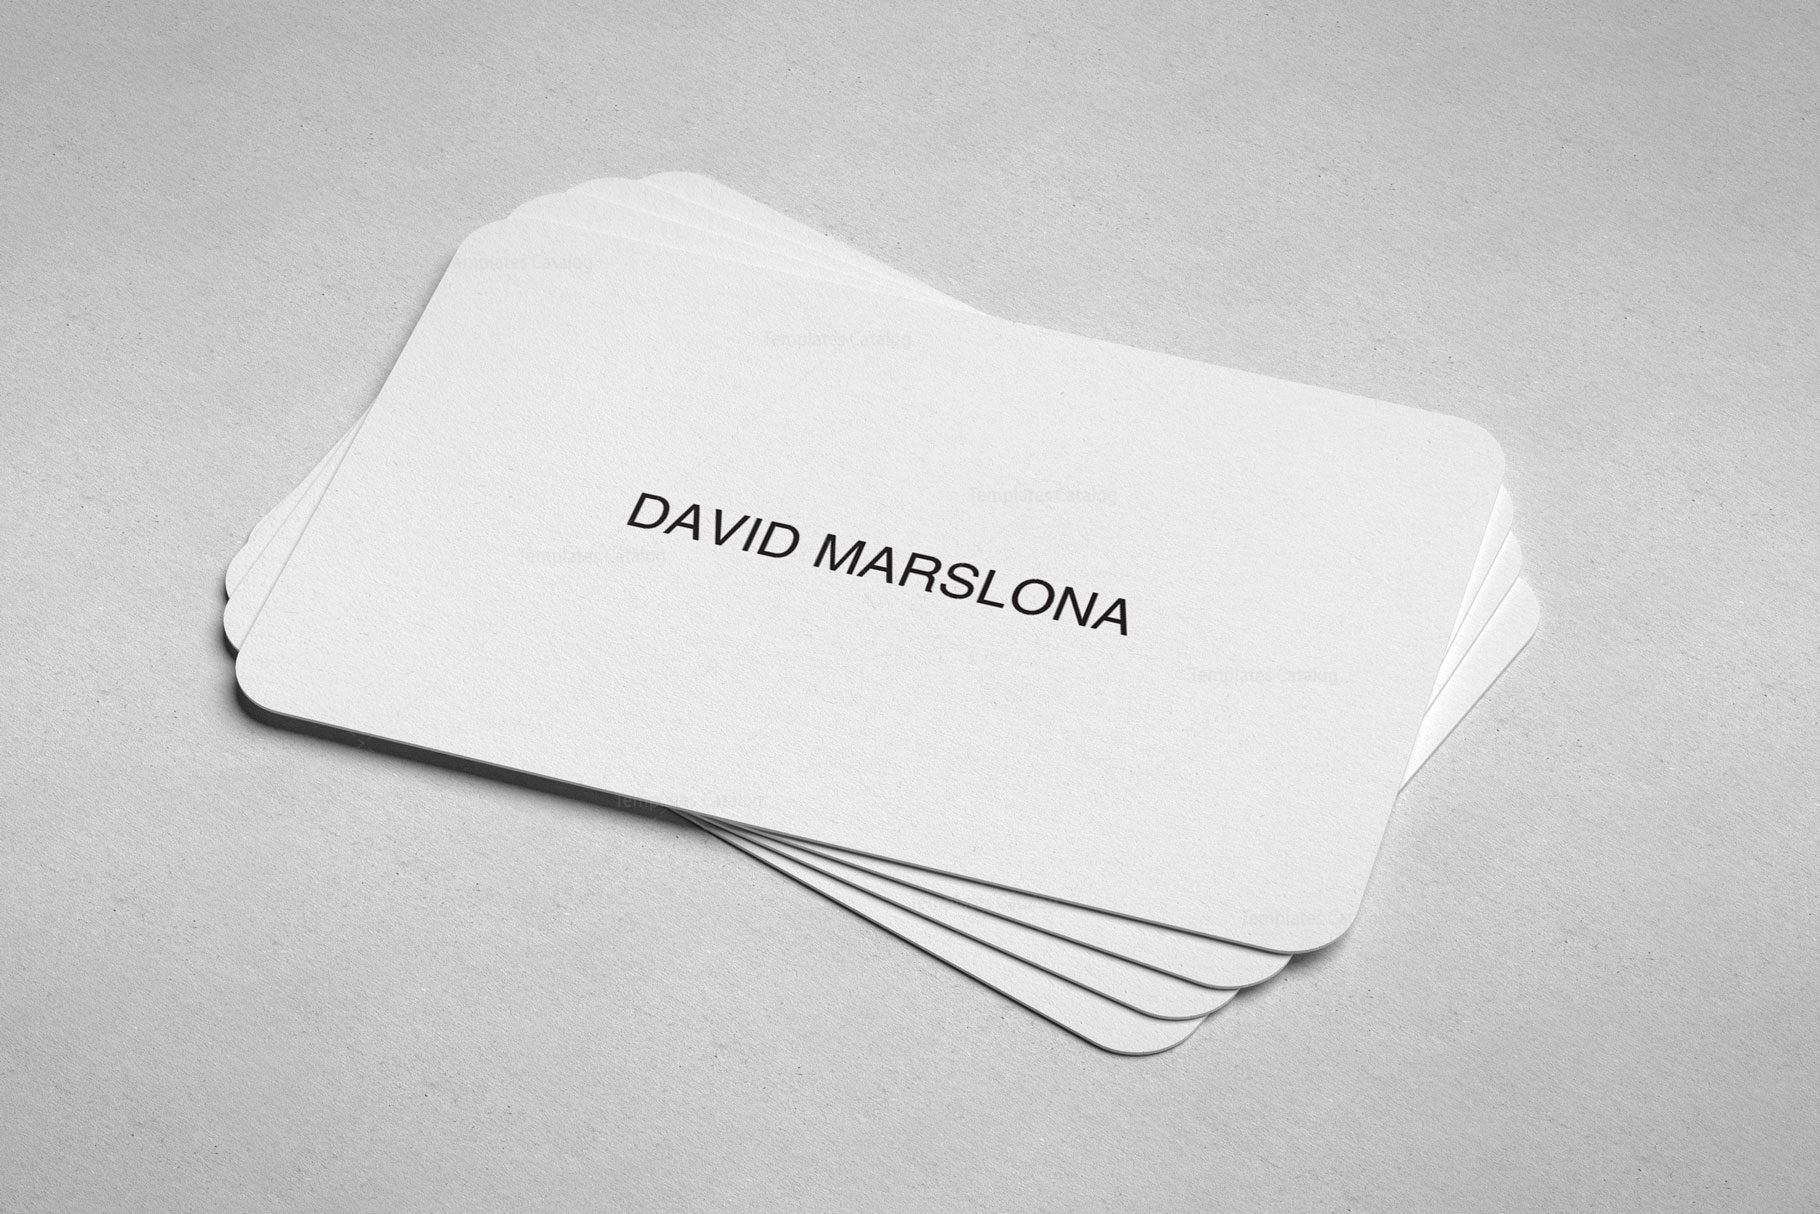 Easy Print Business Card Design 002524 Template Catalog Medical Business Card Design Medical Business Card Printing Business Cards